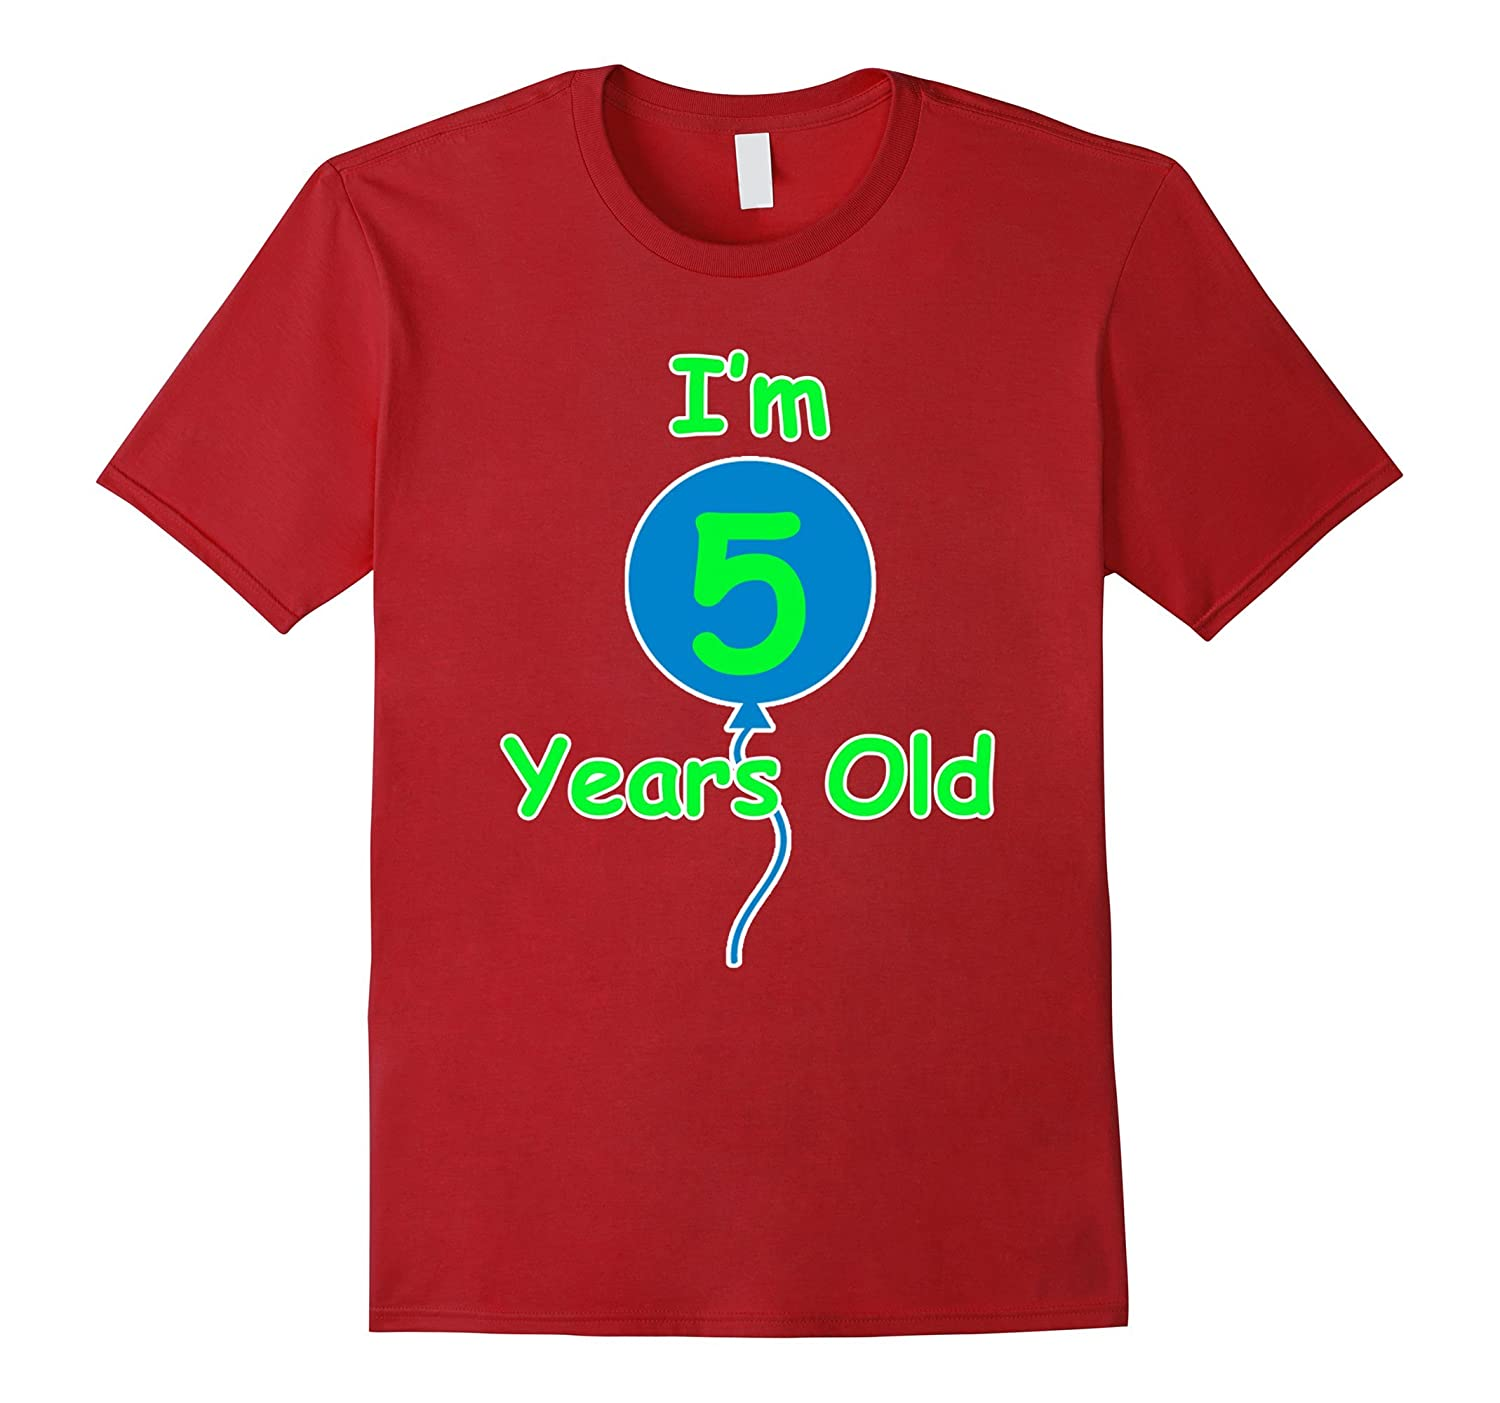 5th Birthday Gift I'm 5 Years Old T-Shirt Party Boy Girl-TH